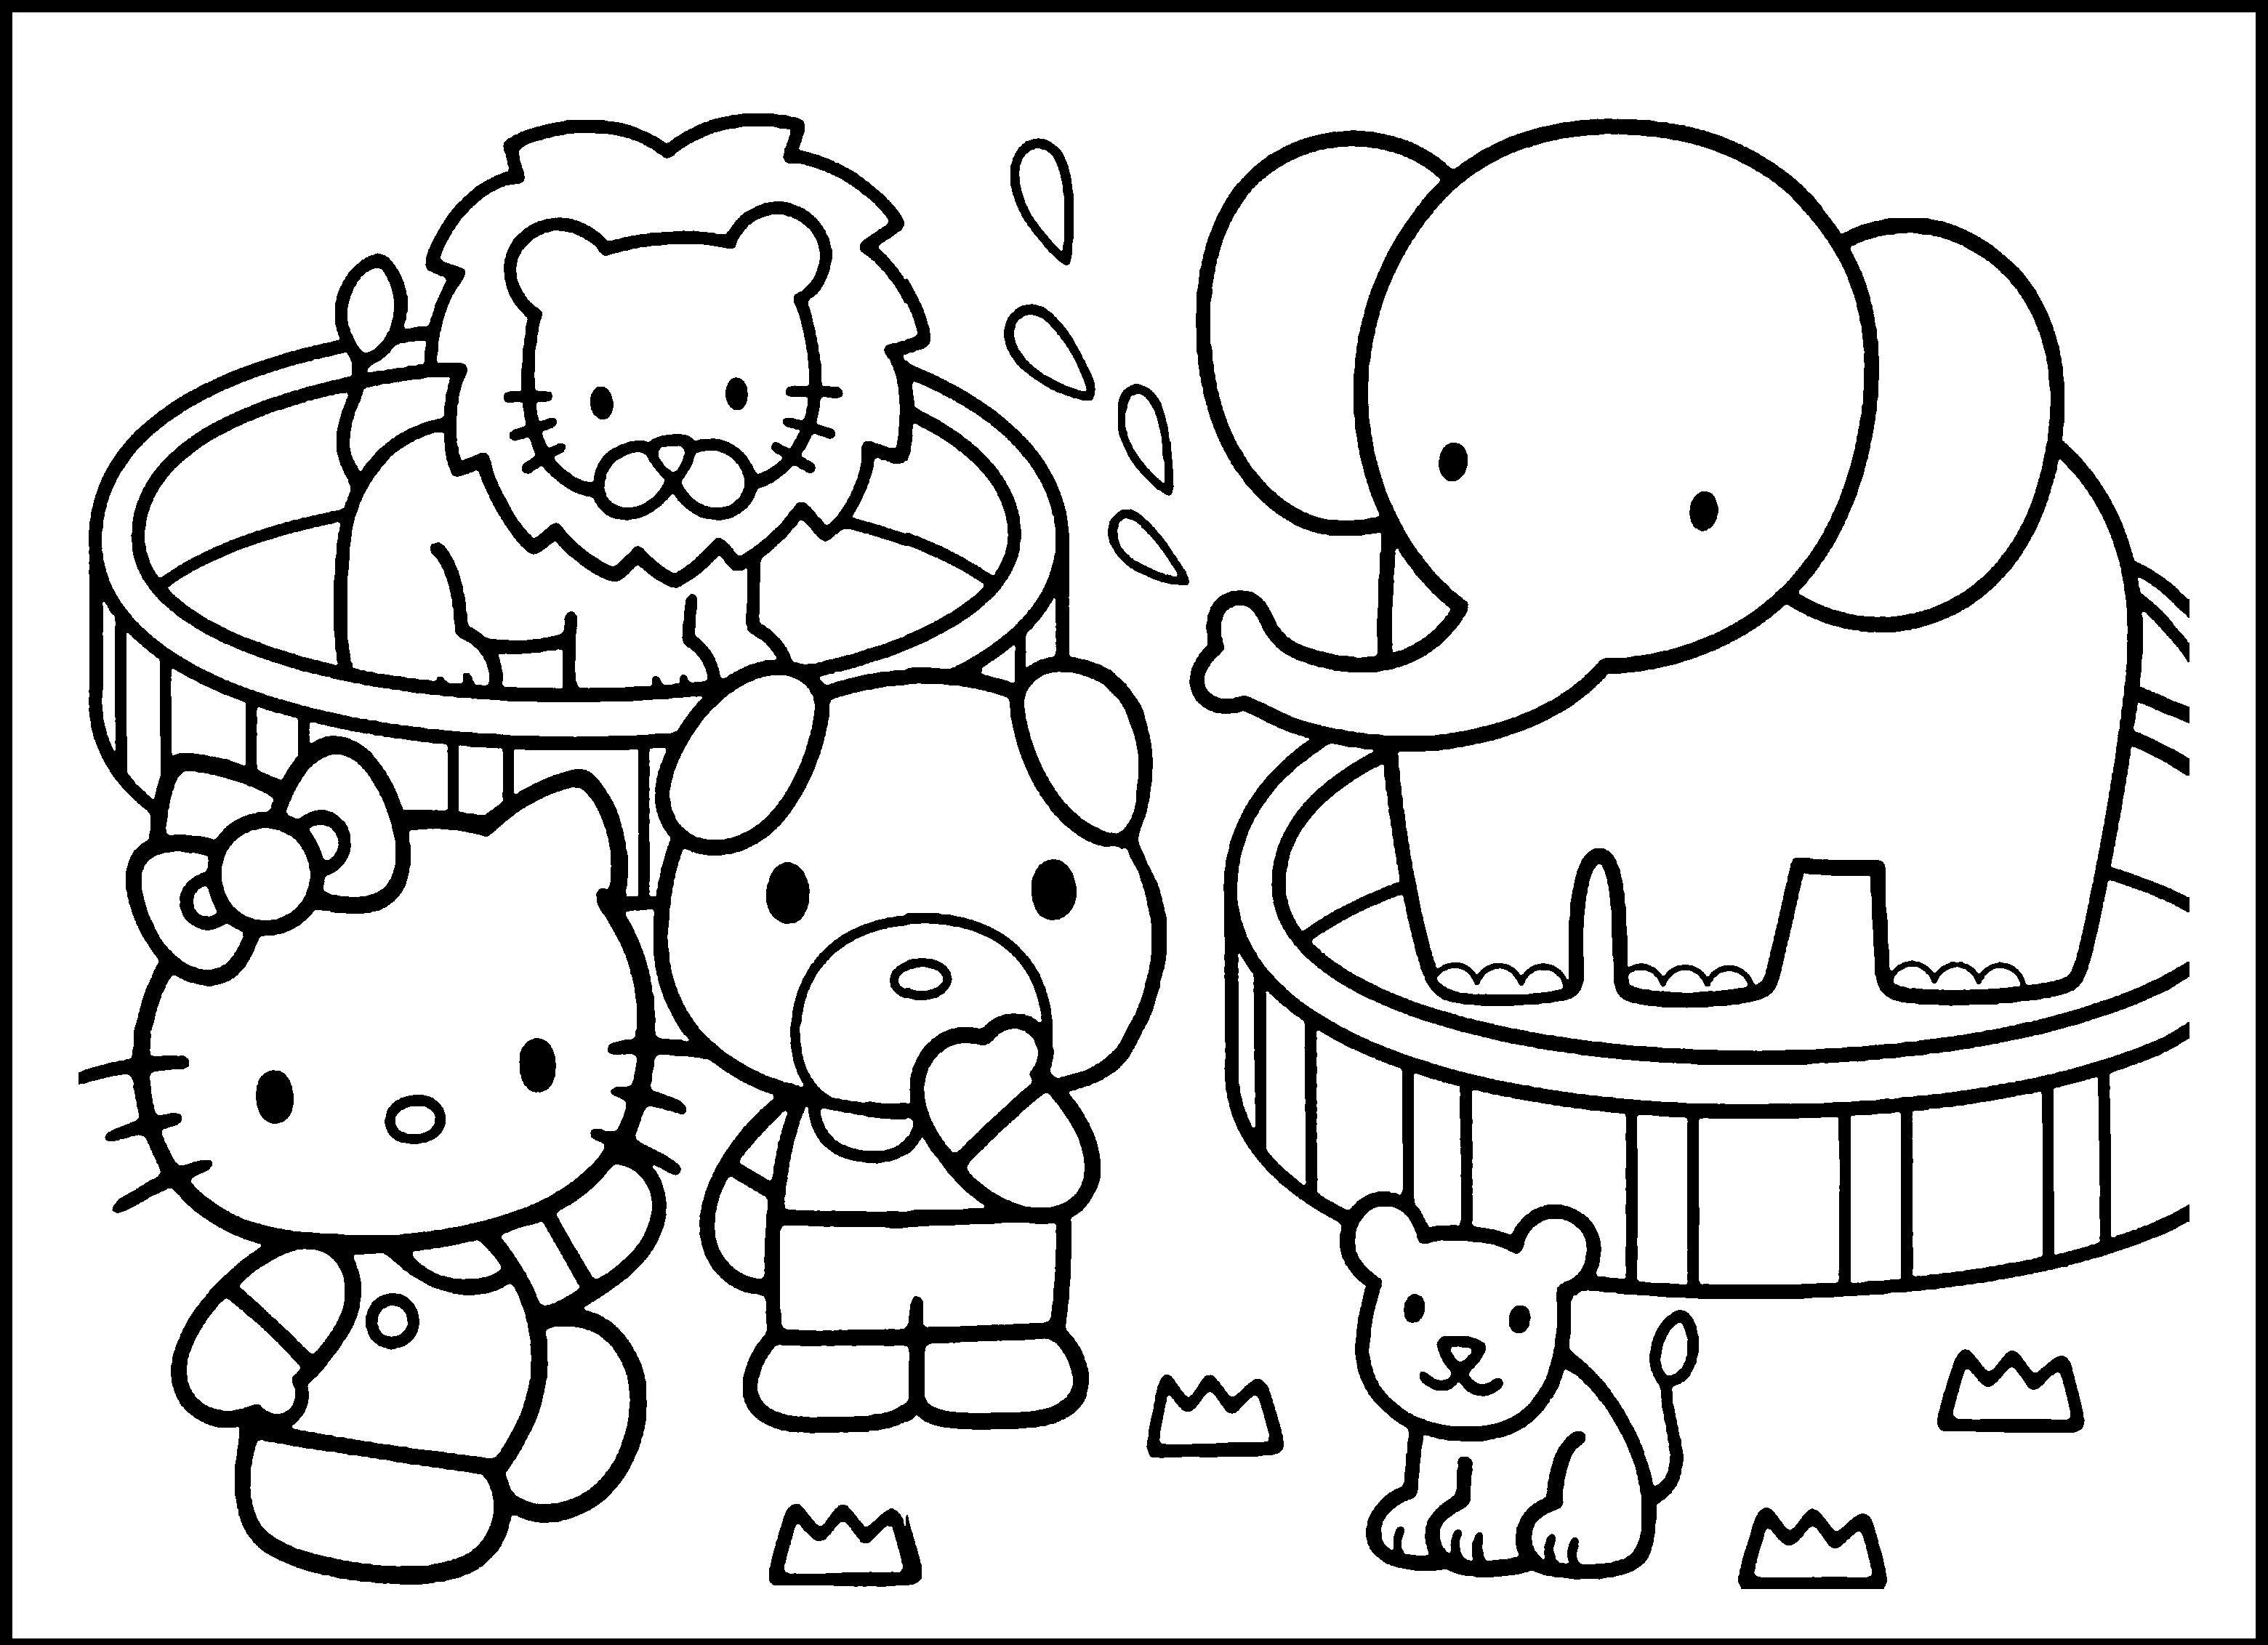 Free Zoo Black And White Clipart, Download Free Clip Art.